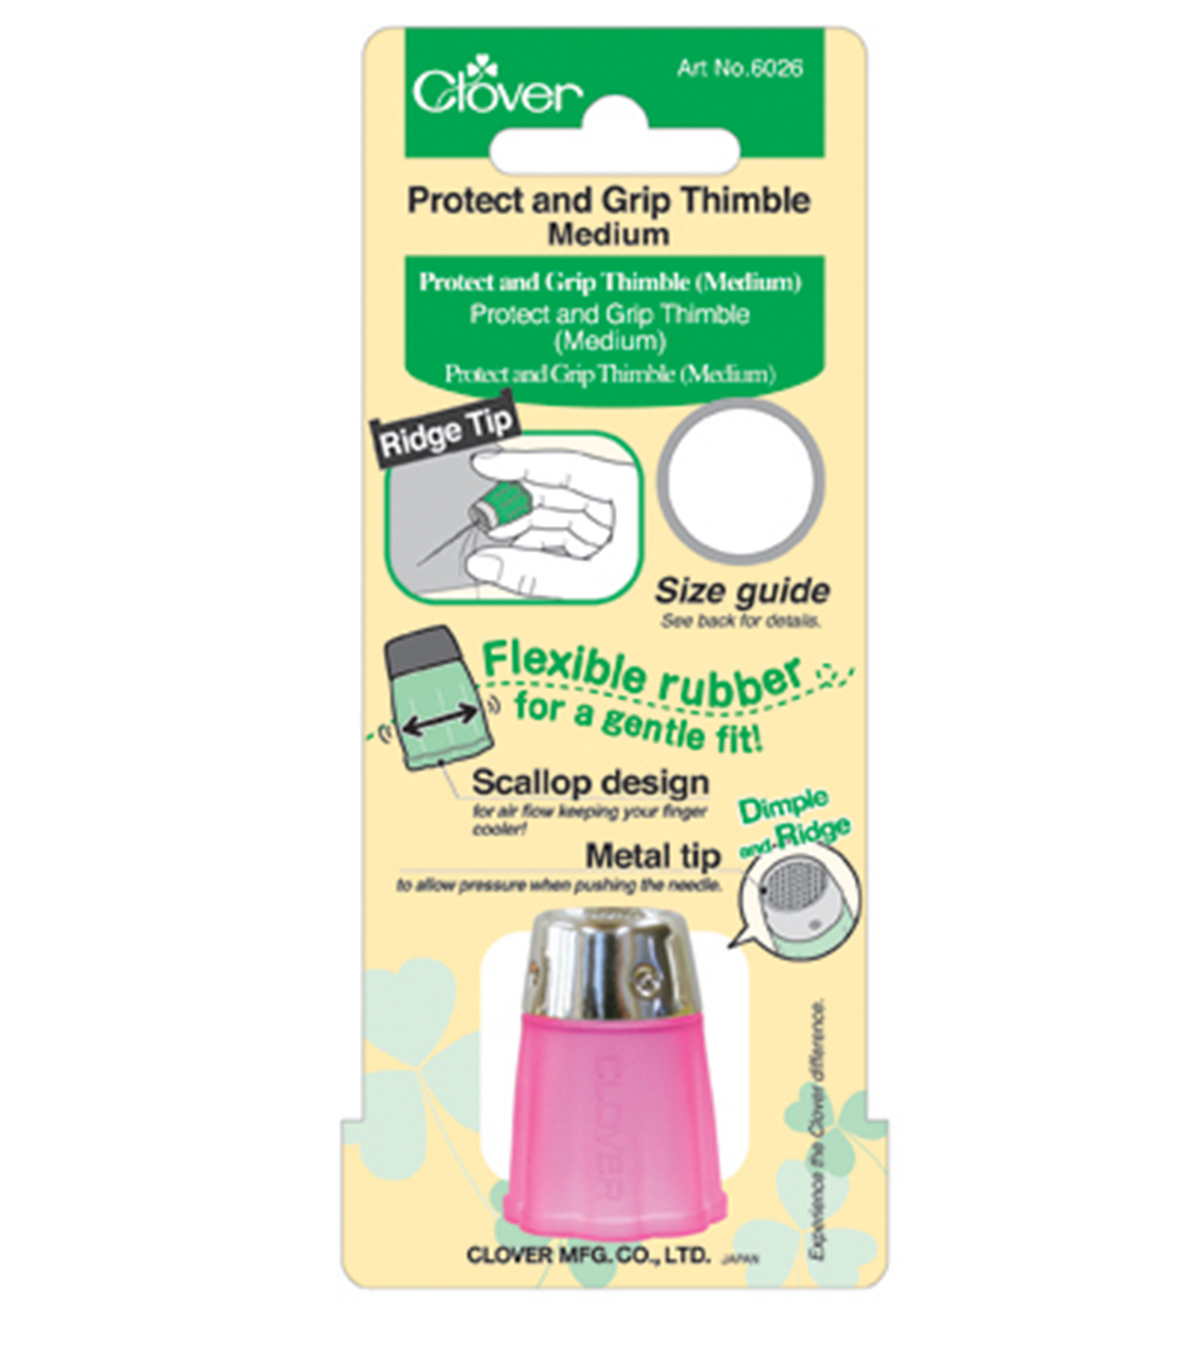 Clover-Protect & Grip Thimble Medium